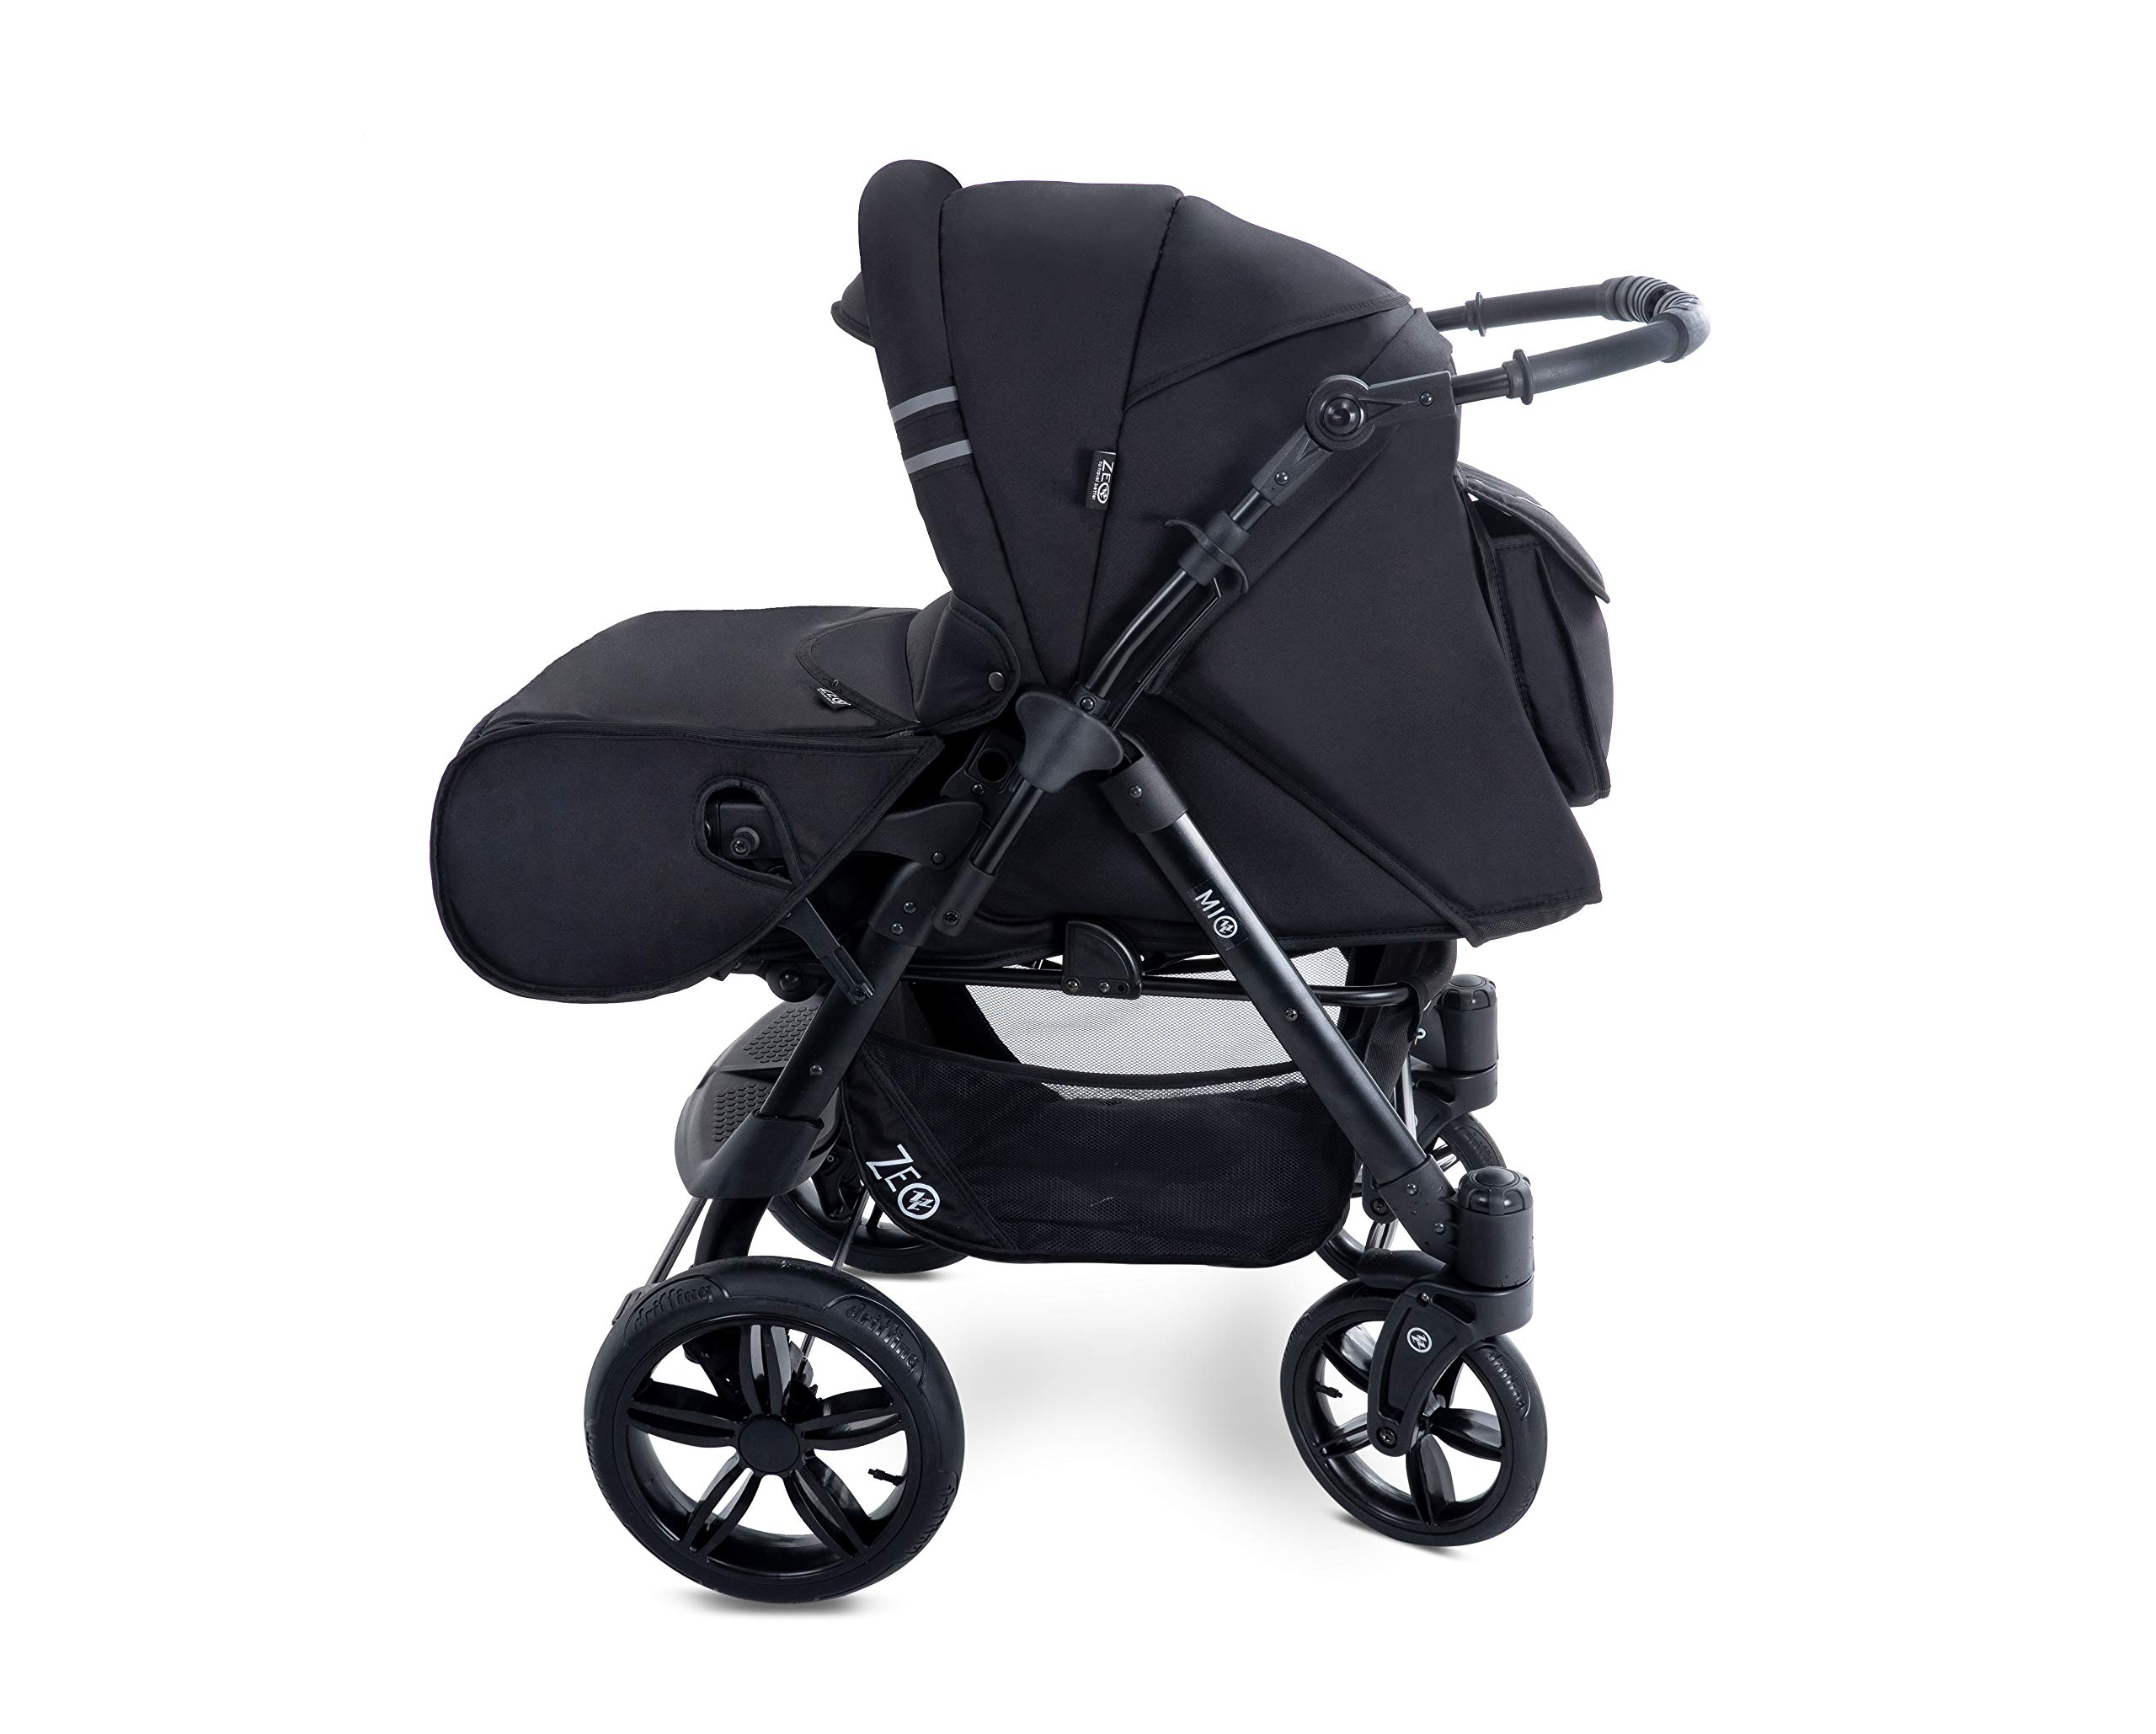 Baby Pram Zeo Mio 3in1 Set - All You Need! carrycot Gondola Buggy Sport Part Pushchair car seat (M1)  3 in 1 combination stroller complete set, with reversible handle to the buggy, child car seat or baby carriage Has 360 ° swiveling wheels, two-fold suspension, four-stage backrest, five-position adjustable footrest and a five-point safety belt The stroller can be easily converted into other functions and easy to transport 4